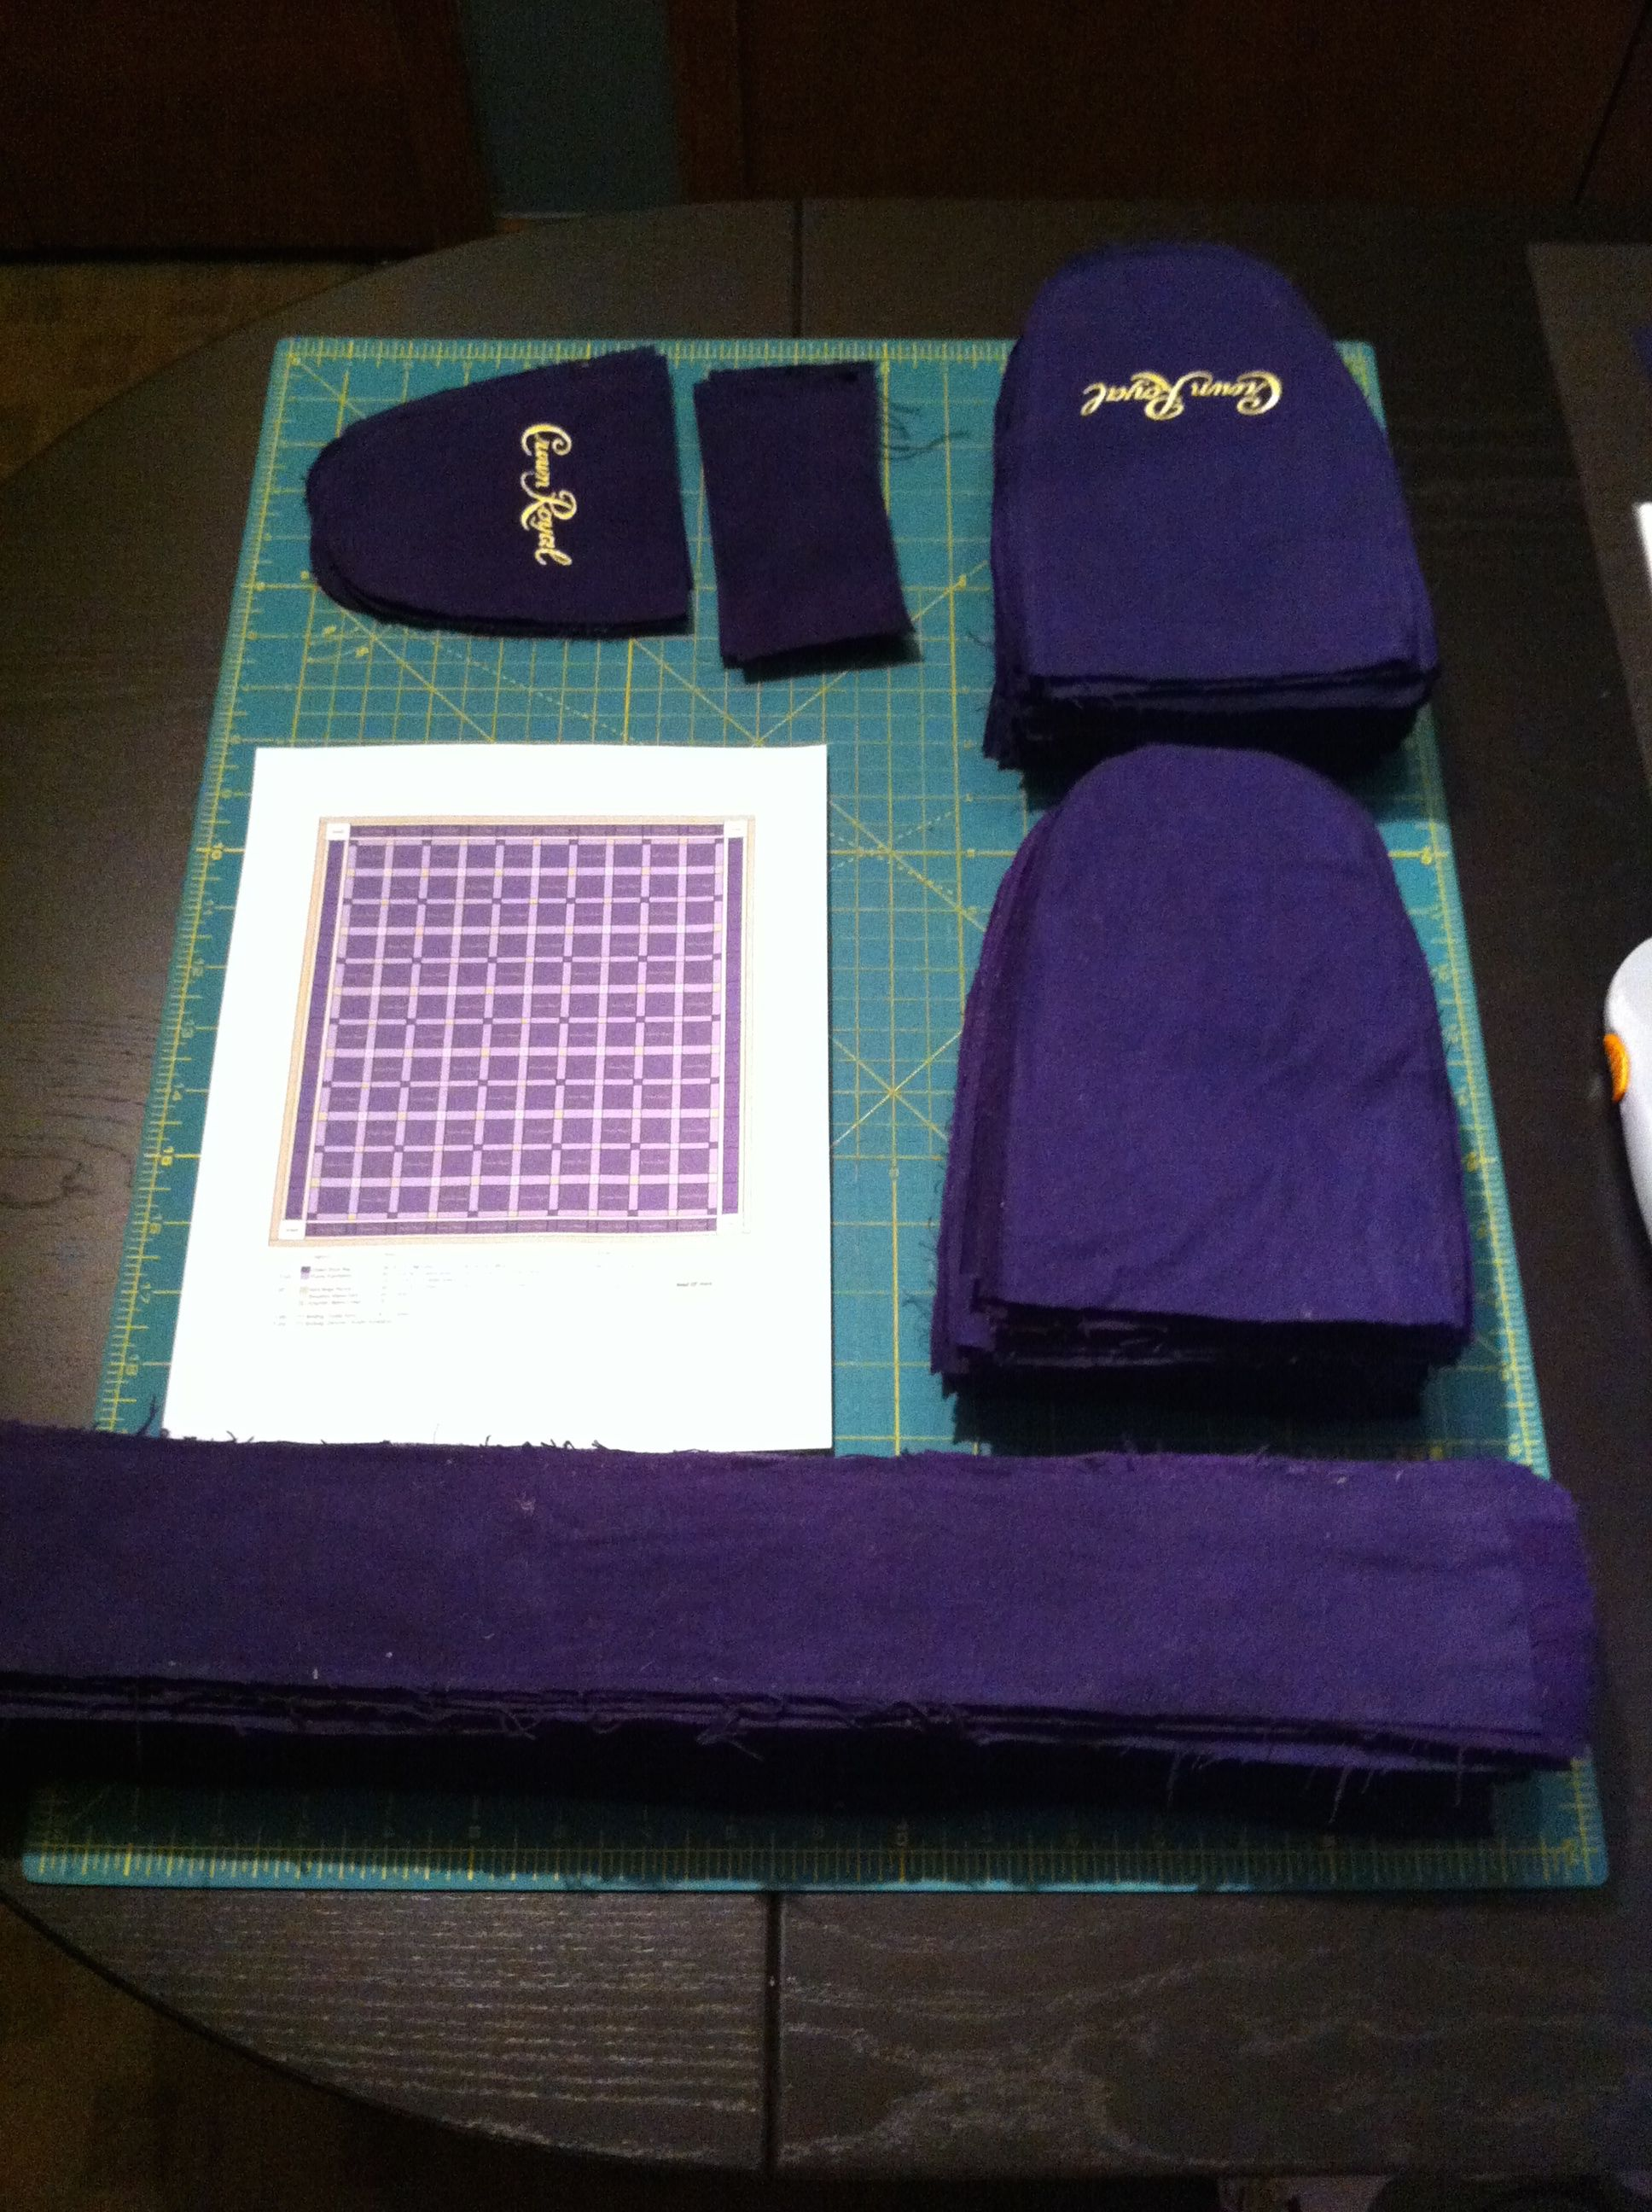 On November 22nd a friend of ours was looking for someone to make ... : crown royal bag quilt - Adamdwight.com